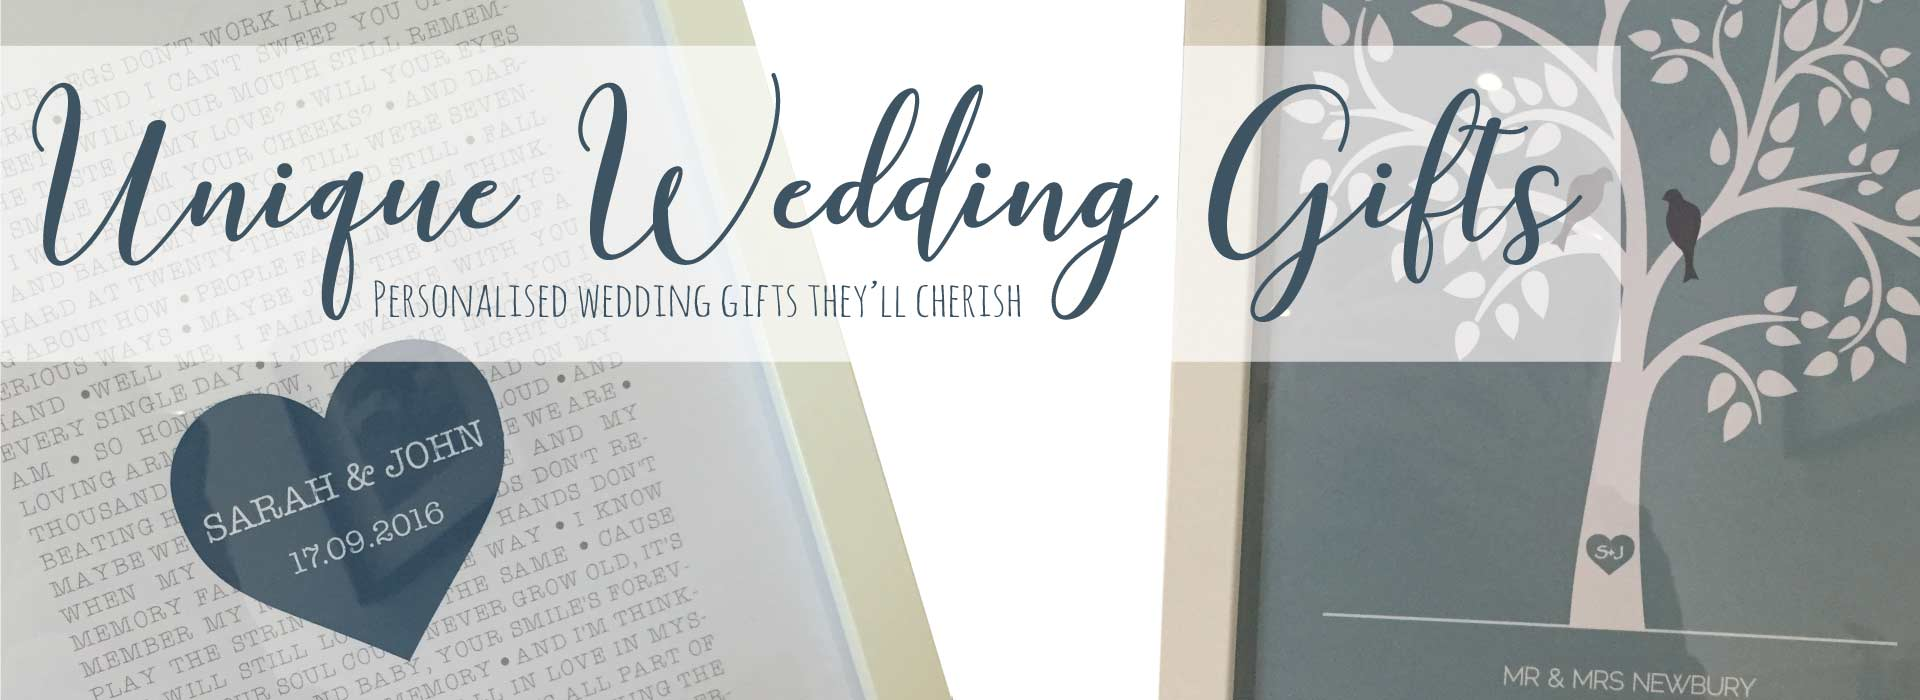 Wedding-website-slider